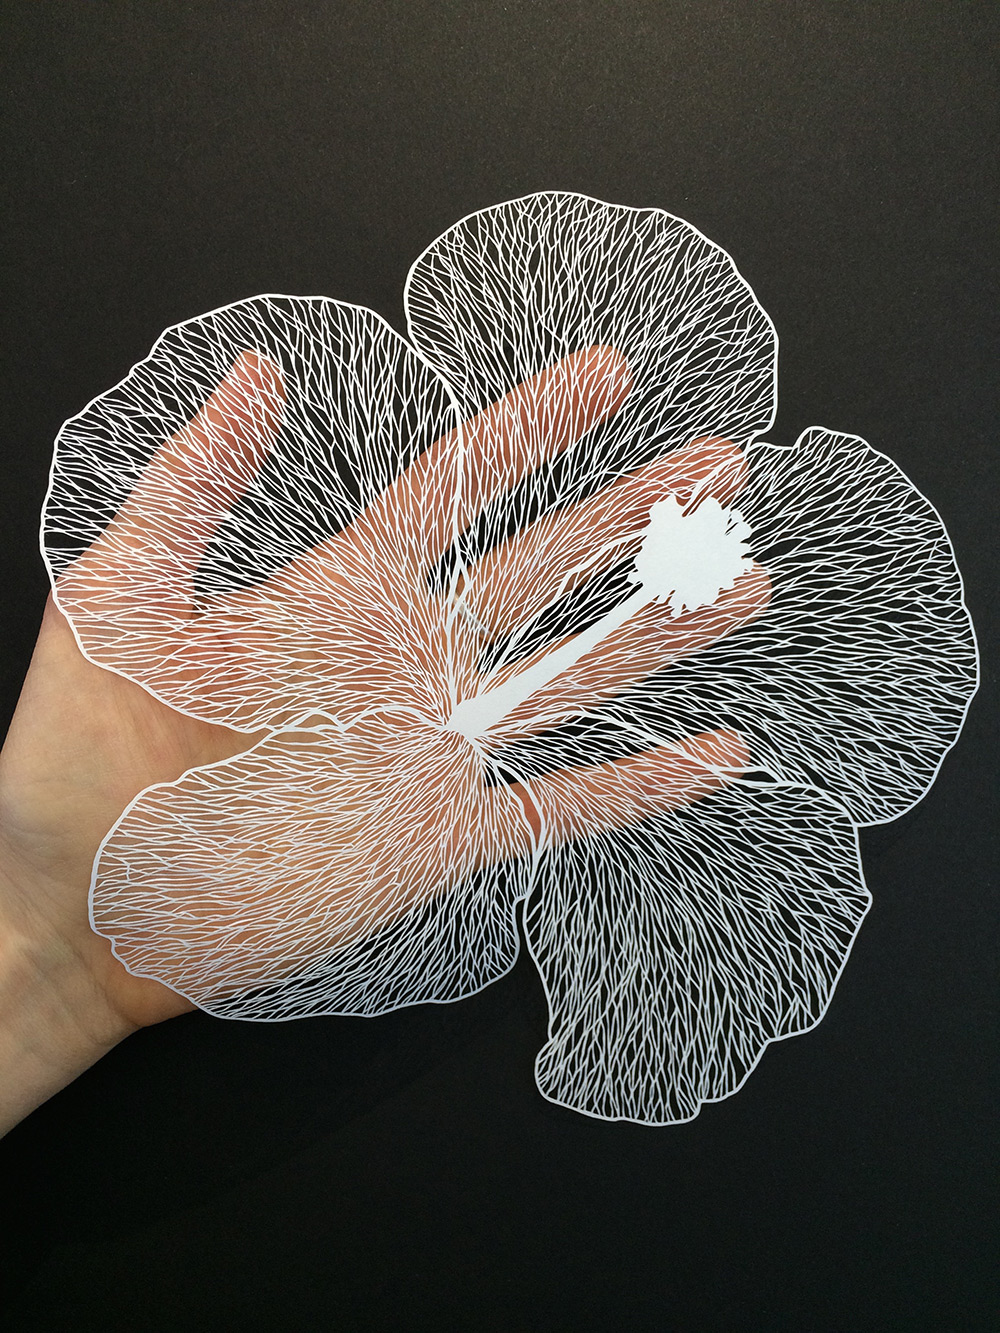 Beautiful and delicate cut paper flowers visual broadcast for Beautiful paper cutting art